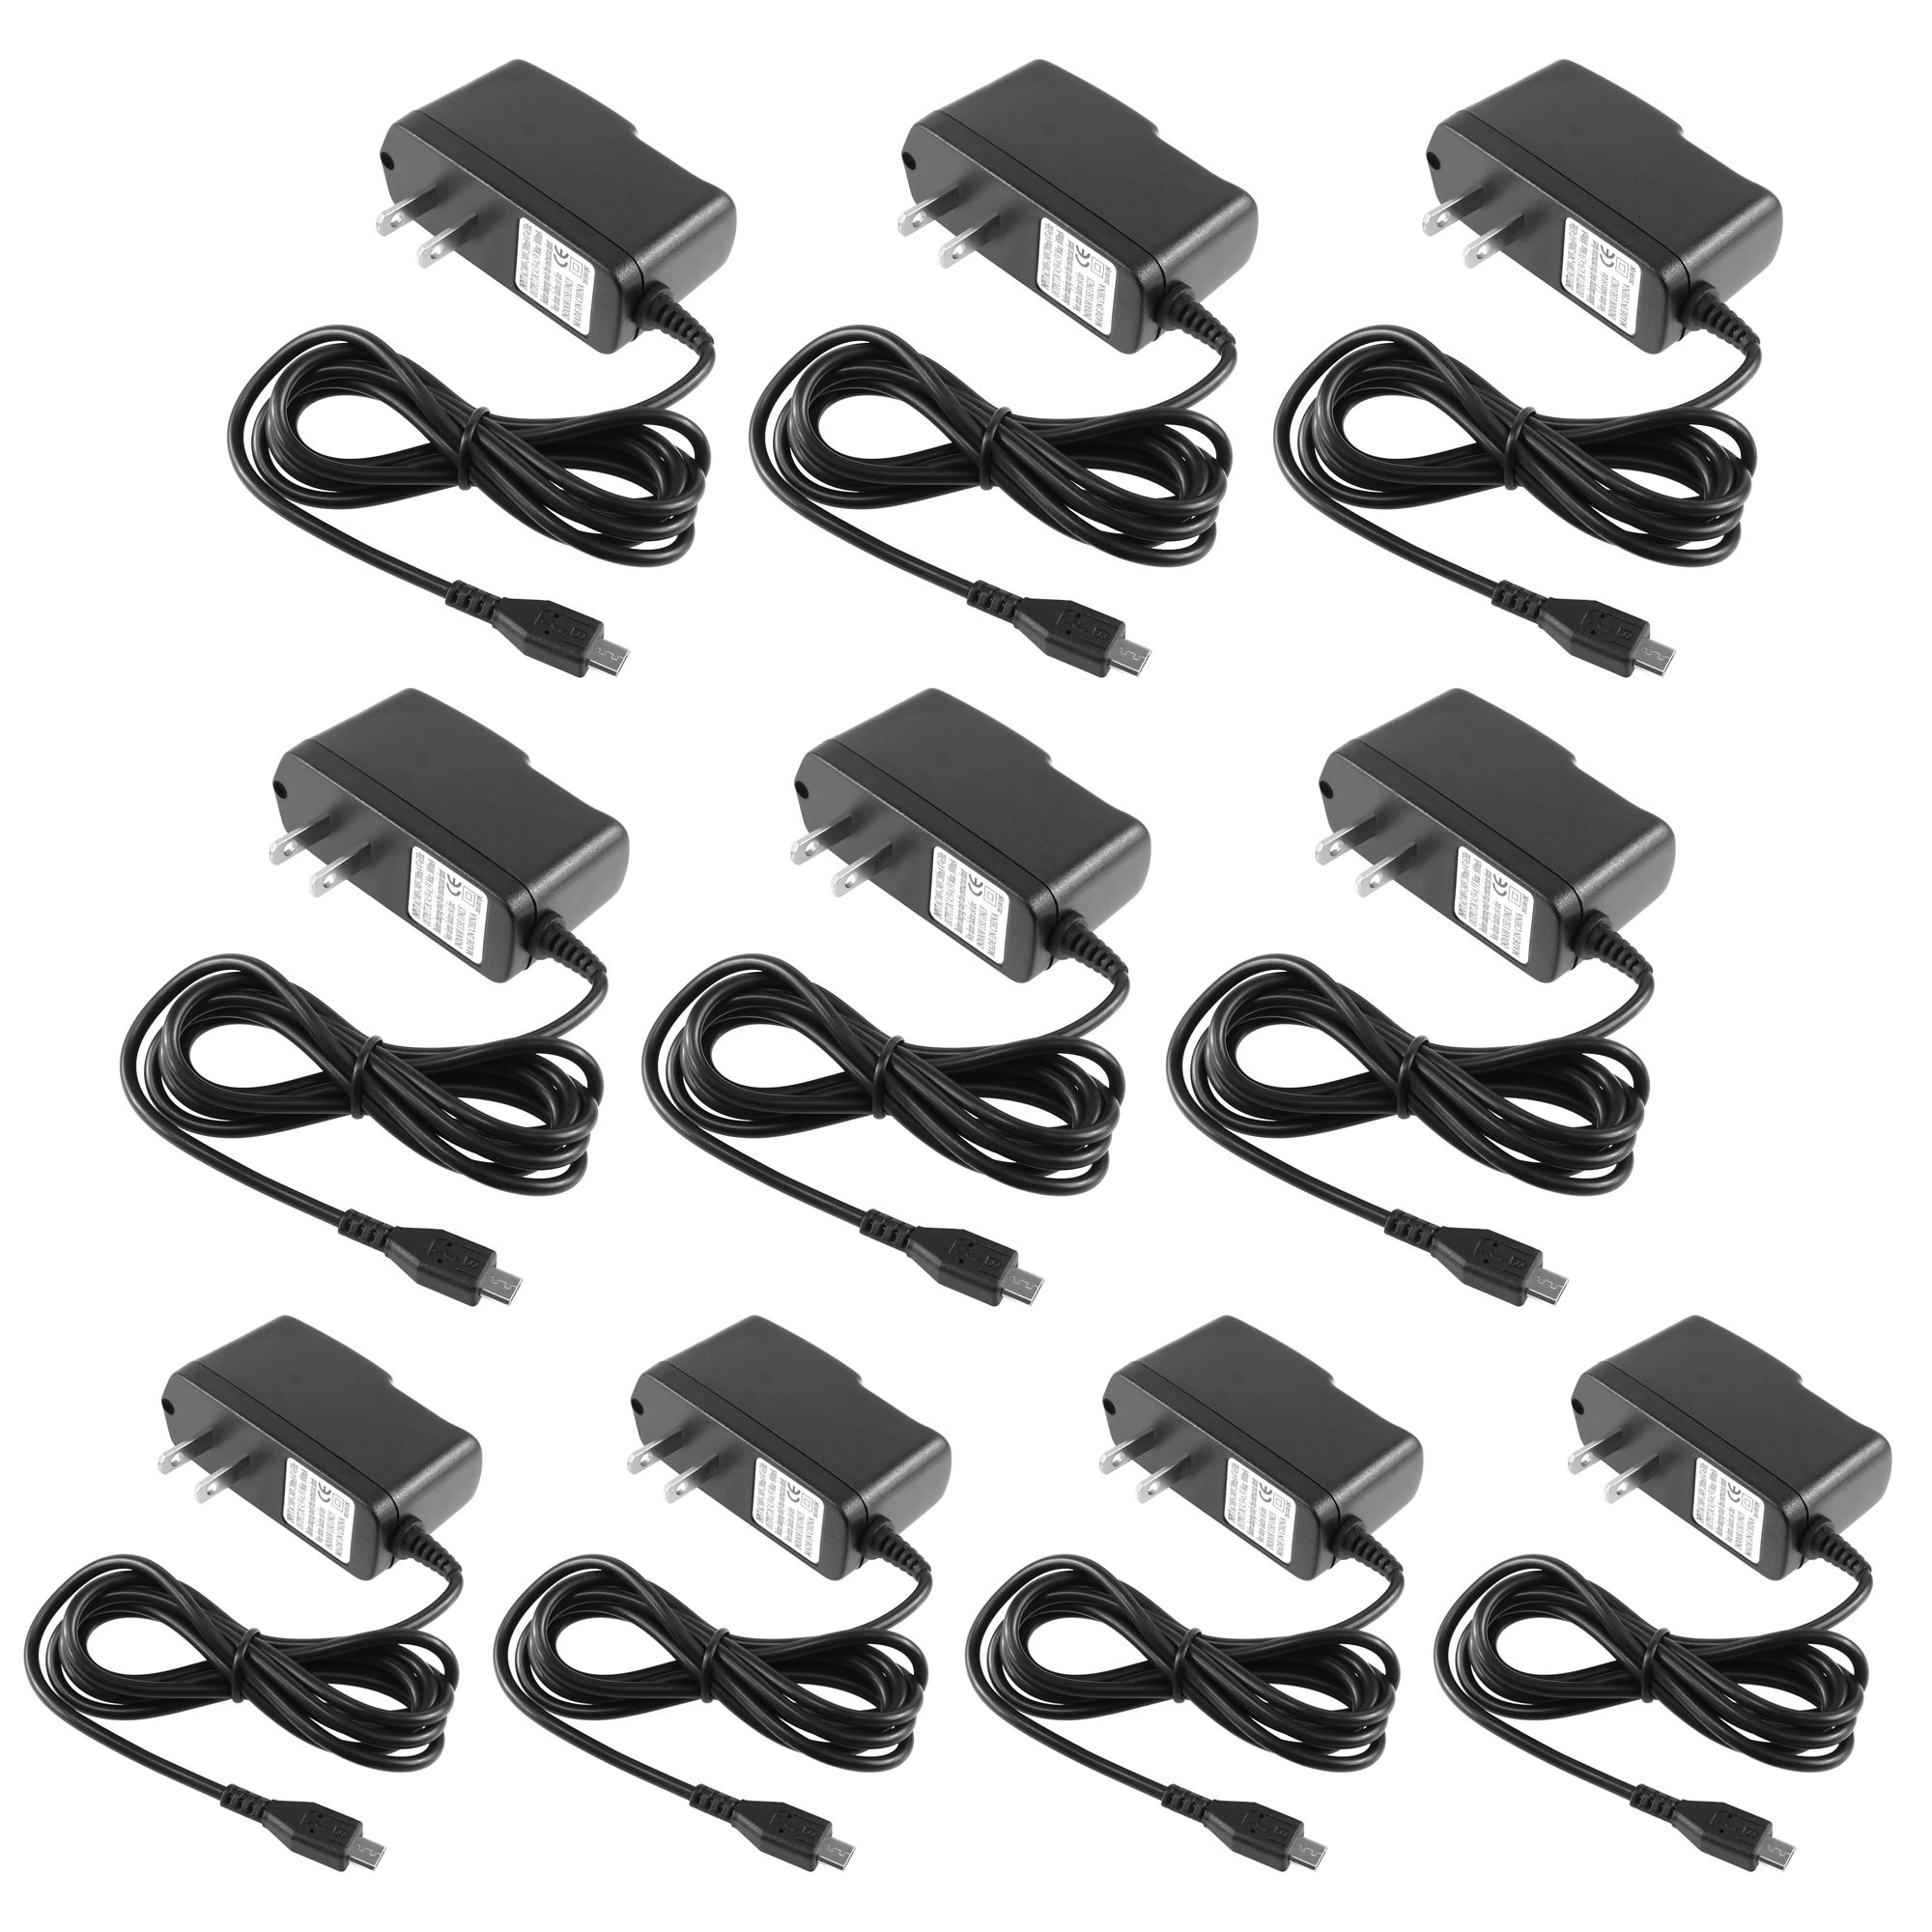 Micro USB Charger by Insten 10-pack Micro USB Home Wall Travel AC Charger For Android Smartphone Samsung HTC LG Motorola Blackberry Huawei ZTE Coolpad Nokia Andriod Cell Phone Mobile Universal